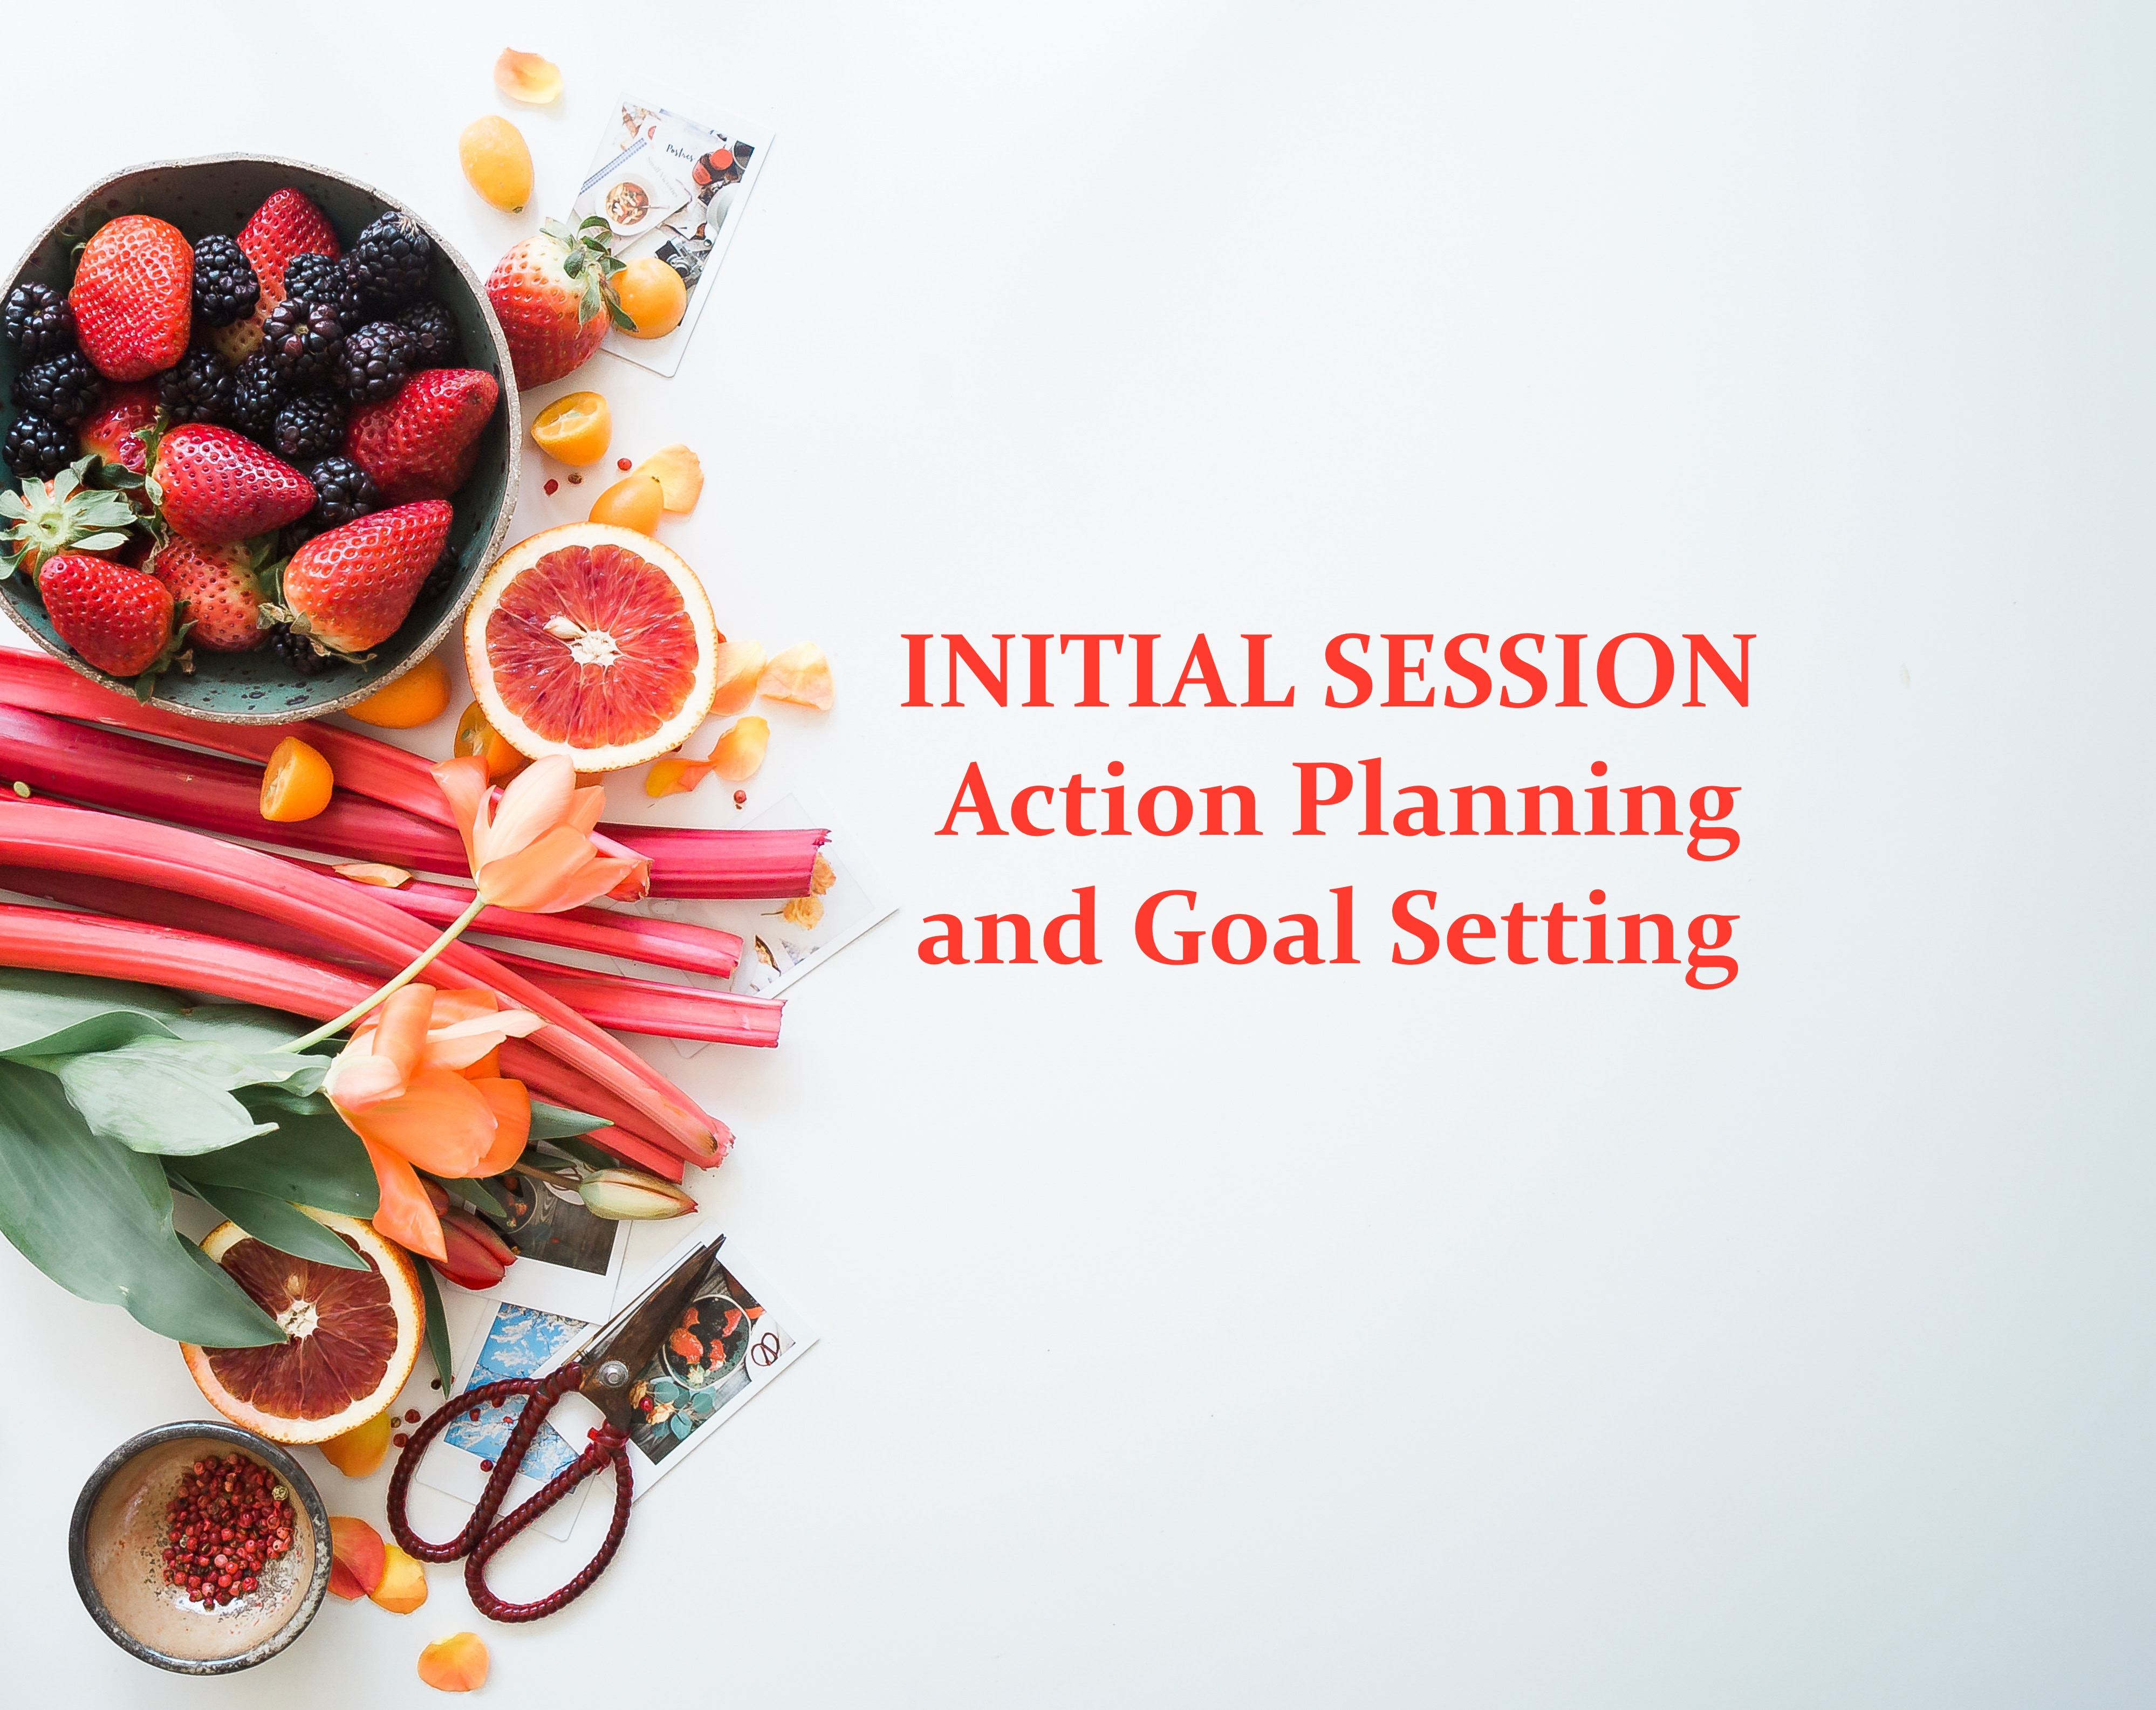 Initial Nutrition Session